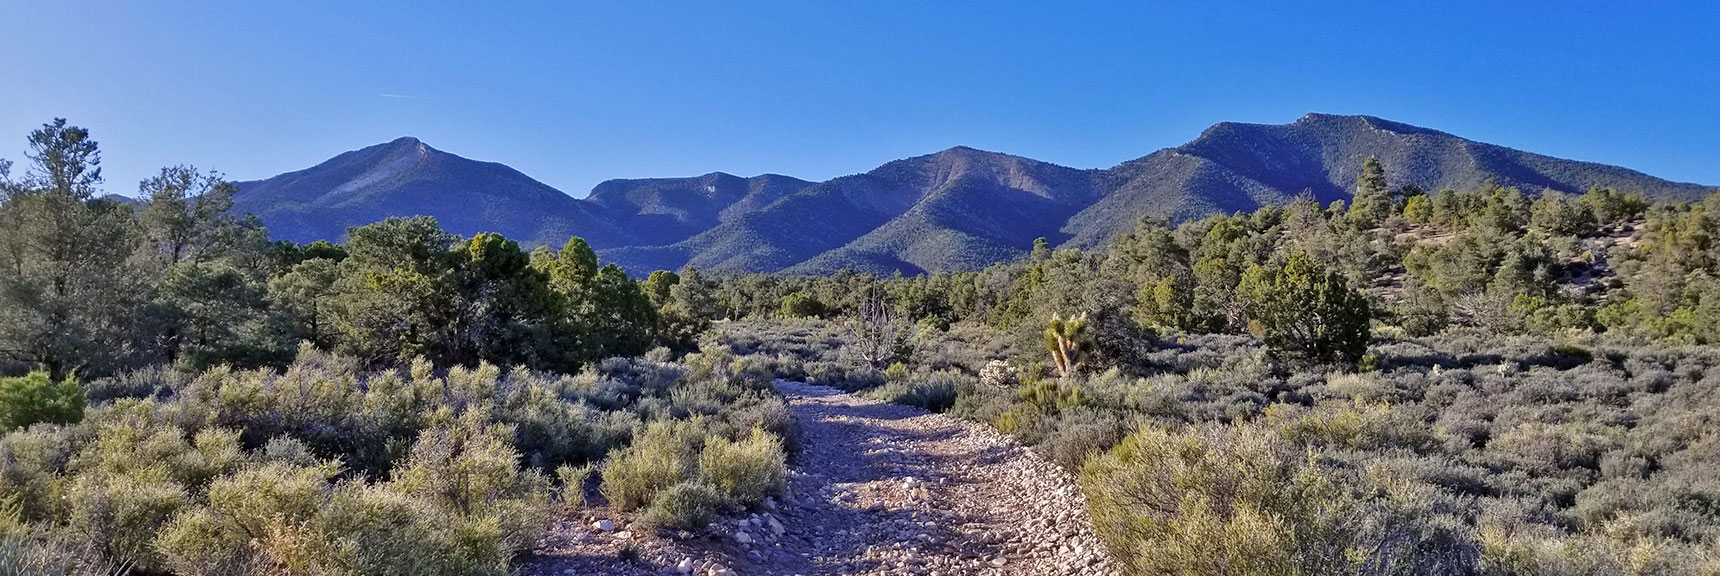 First View of El Padre Mt on 4wd Road Headed to El Padre Mountain, La Madre Mountains Wilderness, Nevada